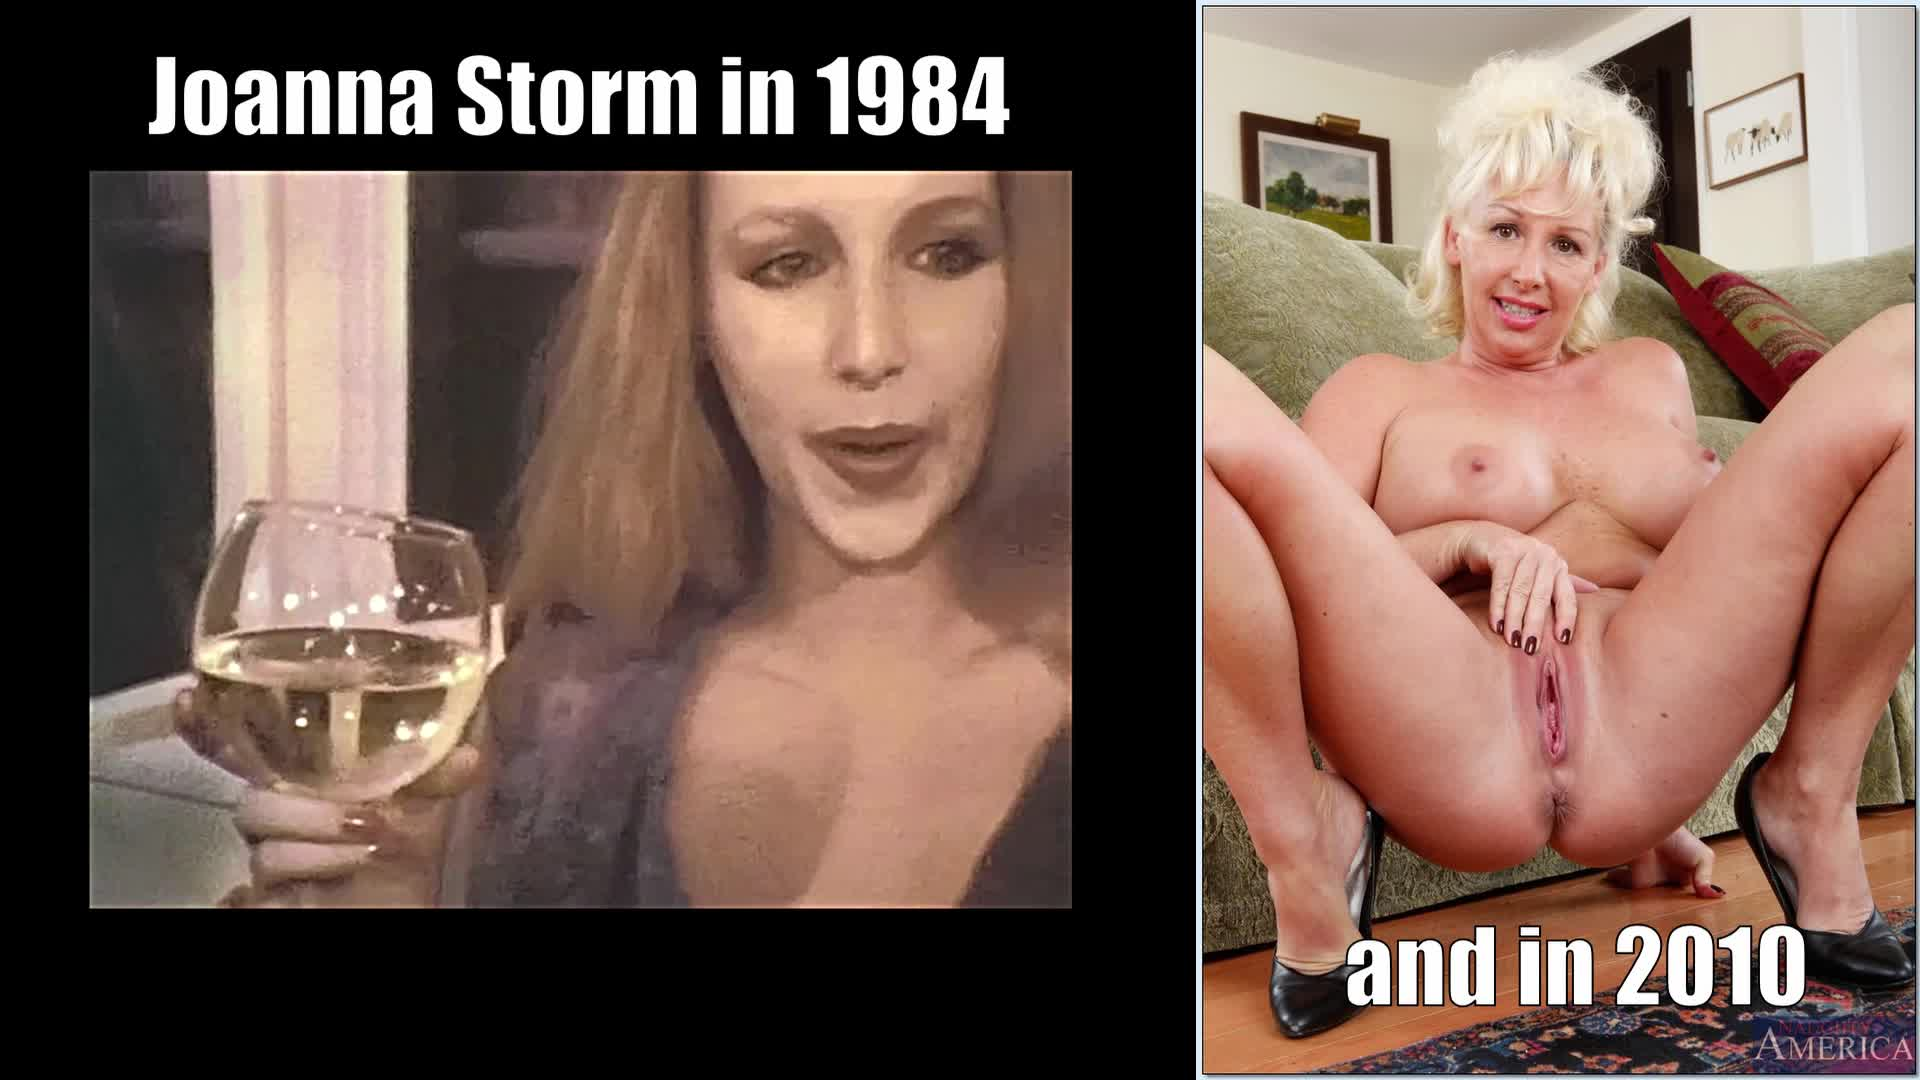 Joanna Storm in Dream Girls 3 (1984) and a shot of her in 2010